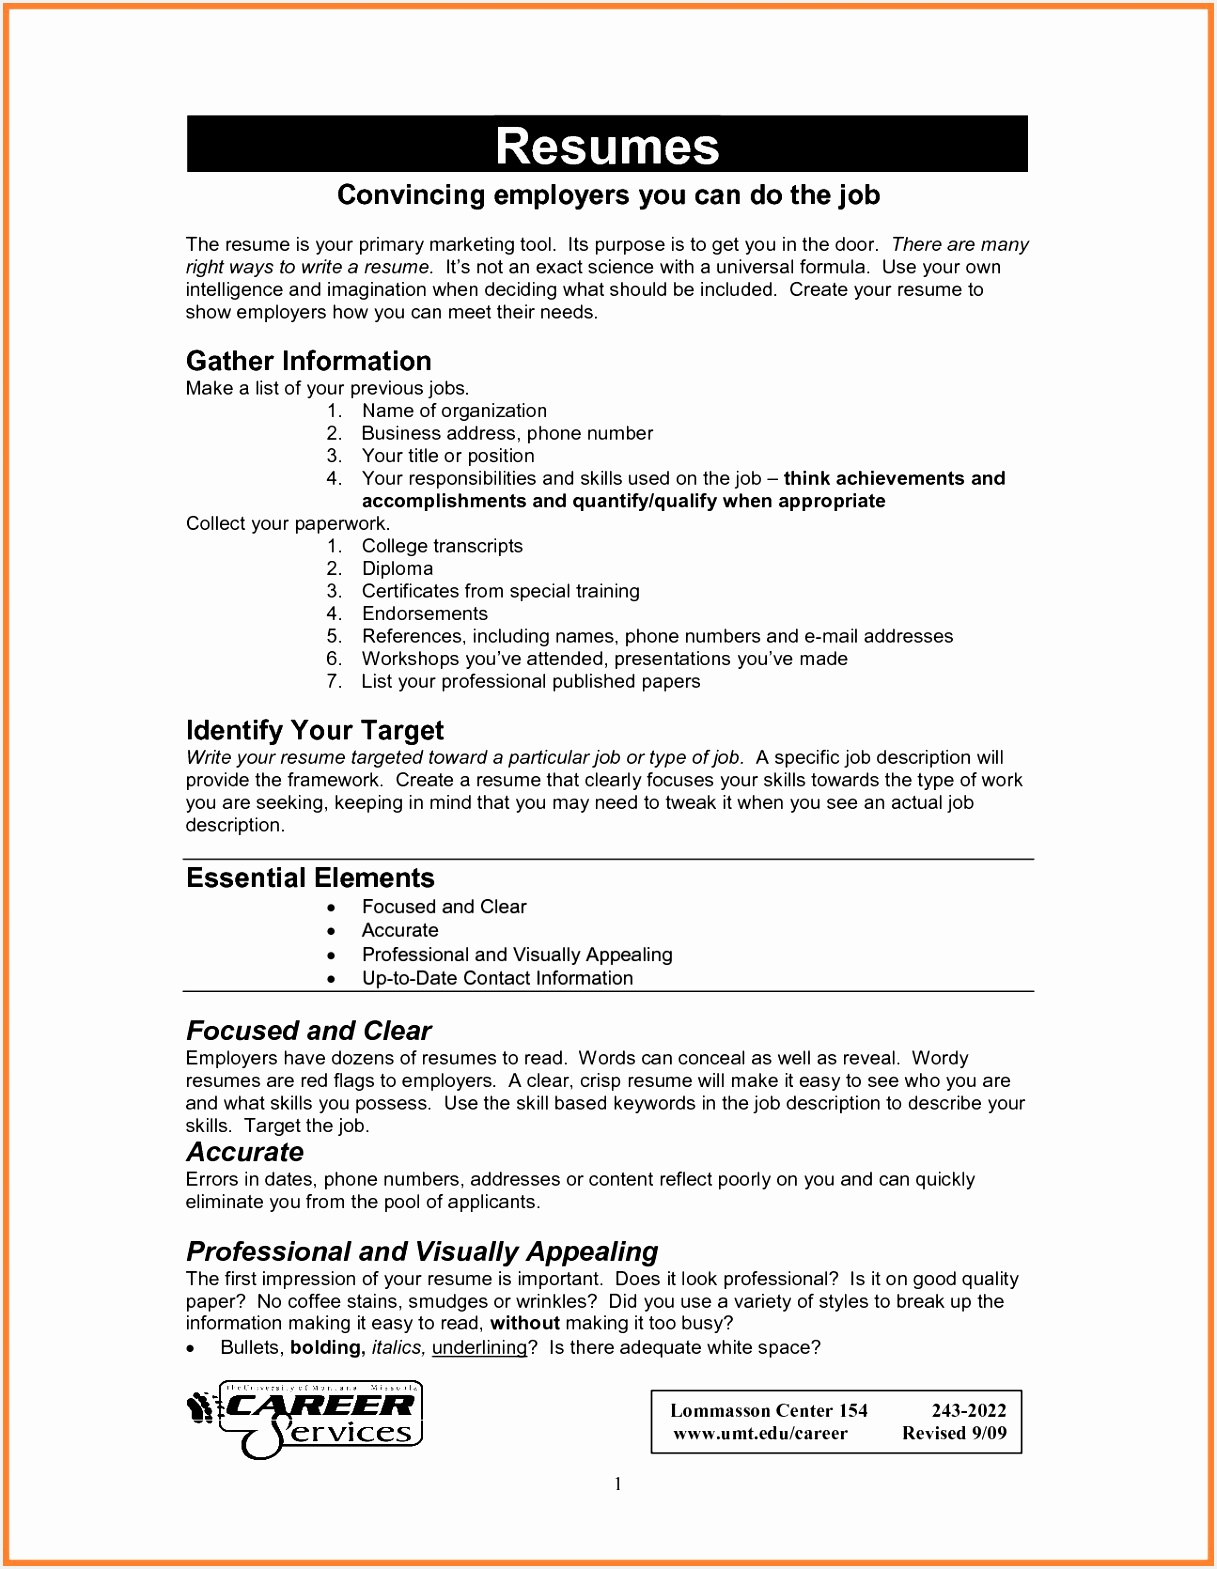 Examples Of First Resumes Fyofj Beautiful How to Make A College Resume New Best Sample College Application Of 8 Examples Of First Resumes